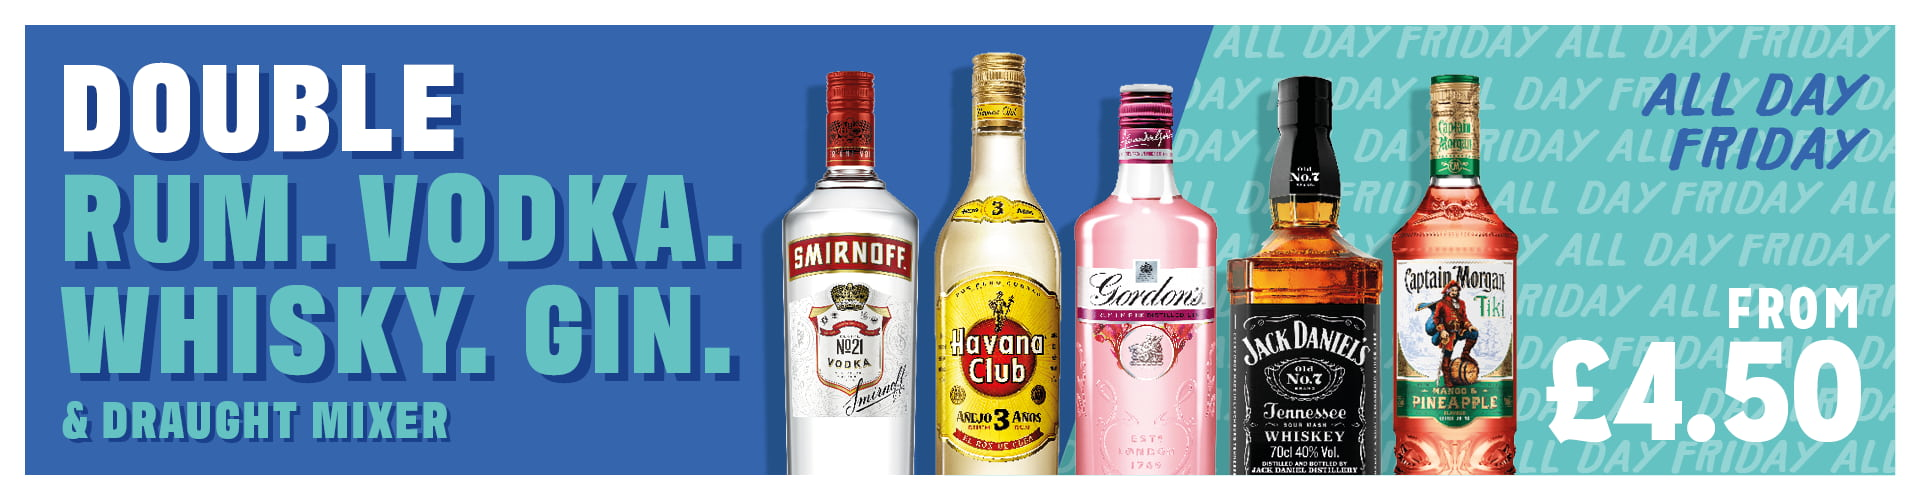 Double rum, vodka, whisky or gin and mixer for just £4.50. Available all day Friday.